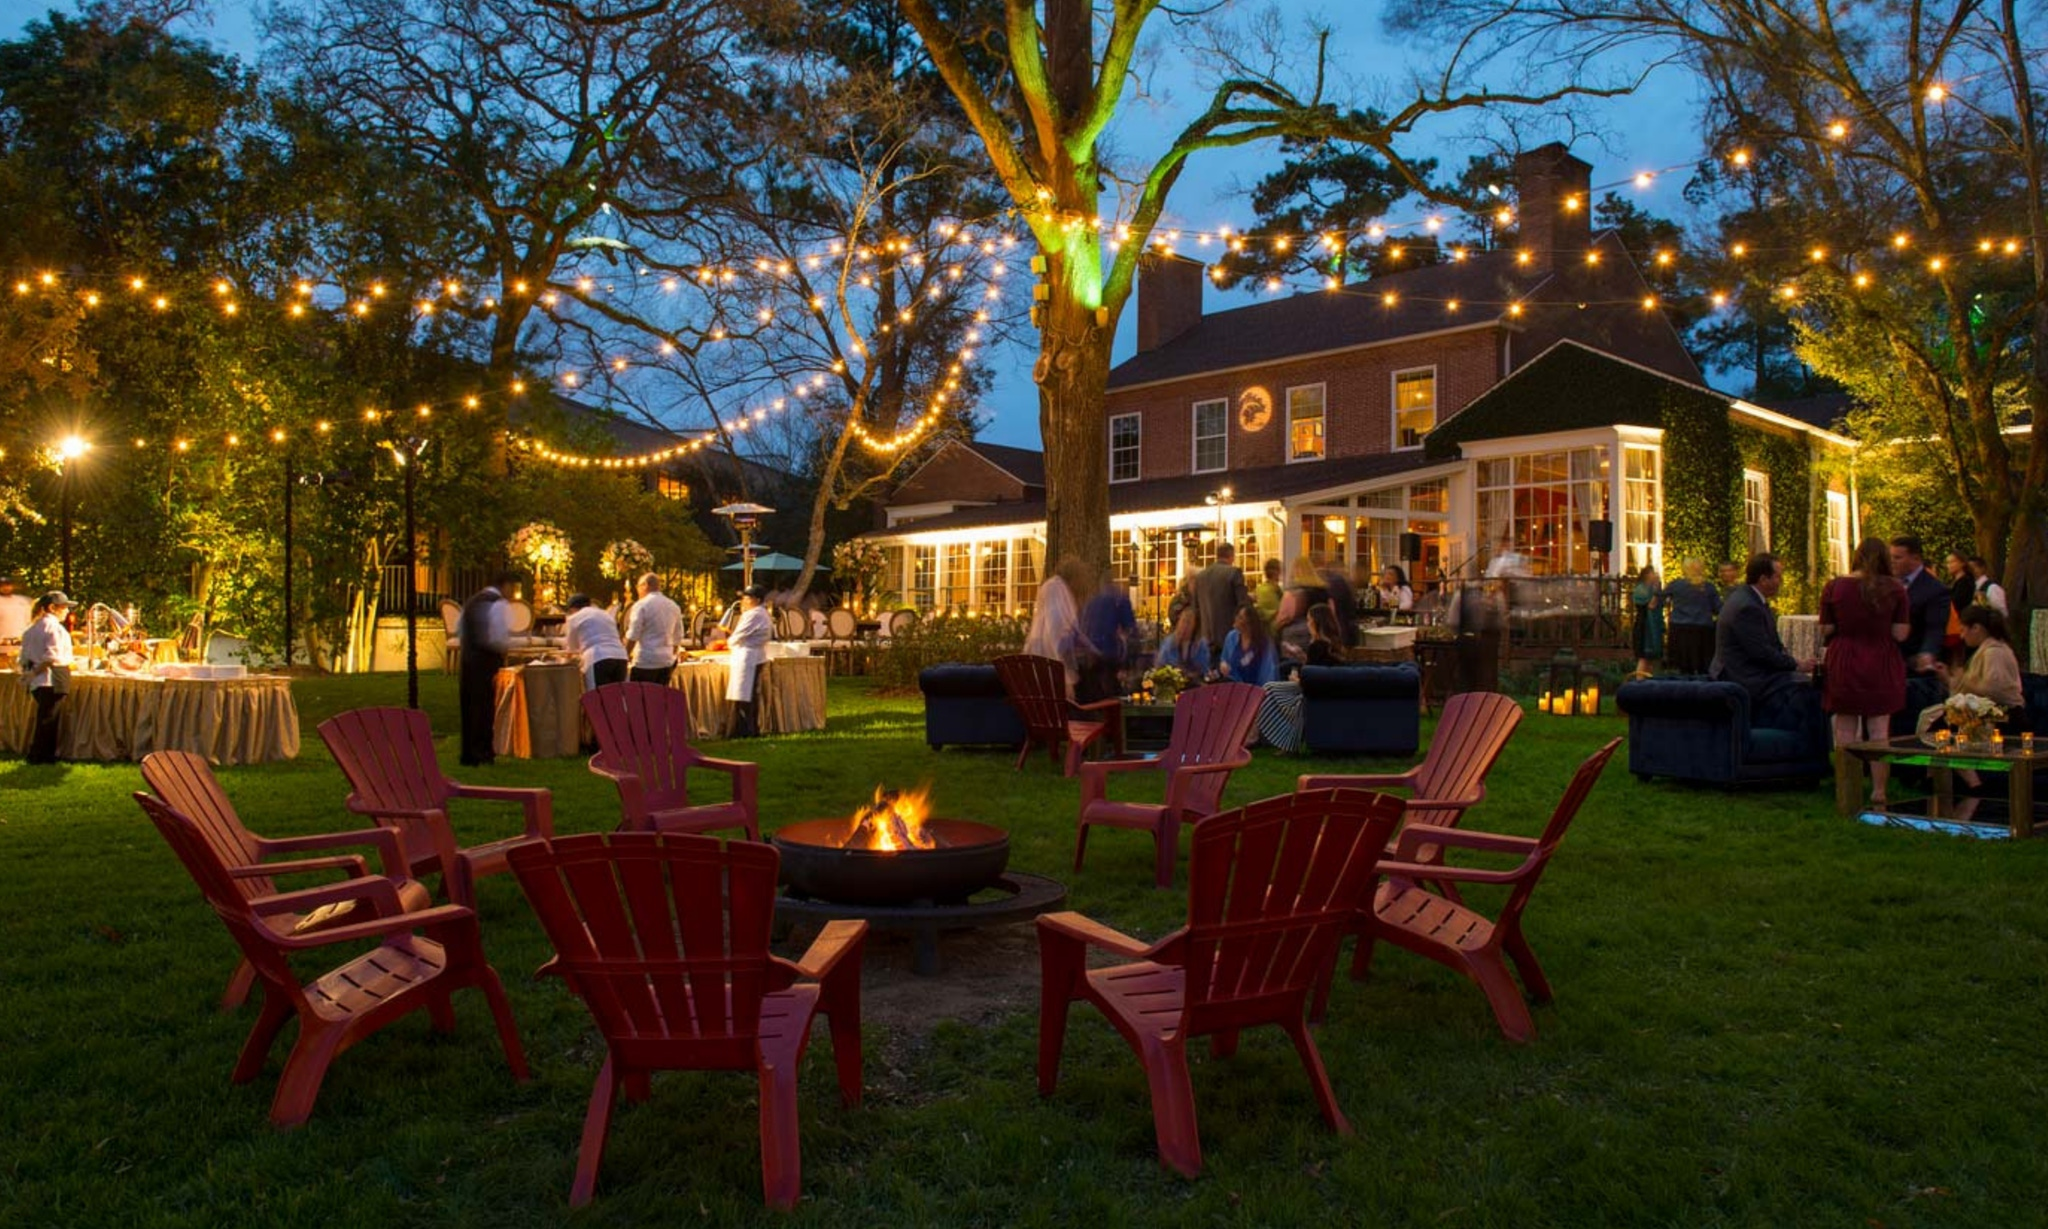 Twinkling lights and red chairs outside in Houston